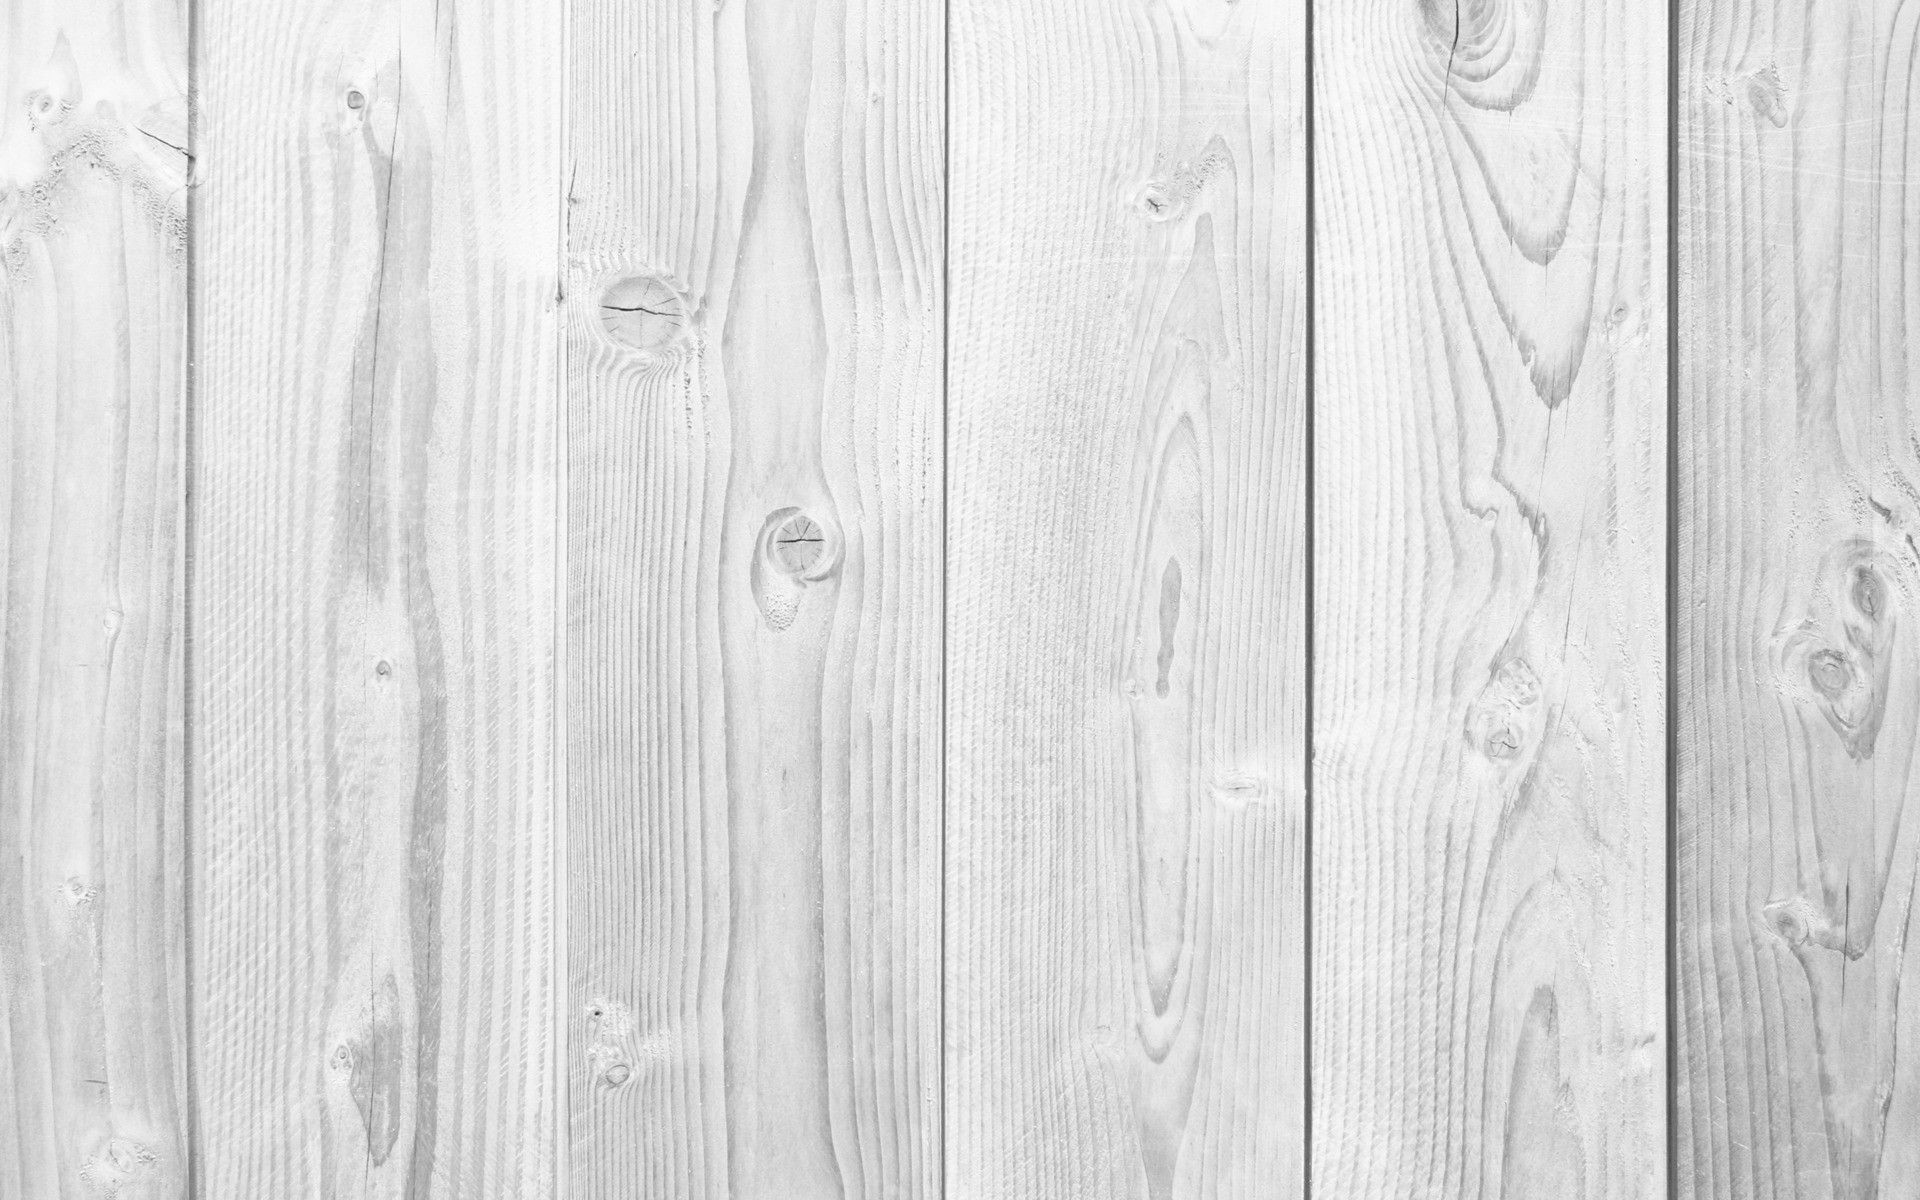 Pin By Mag Rut On My Favorites Wood Wallpaper White Wood Texture Wood Wall Texture